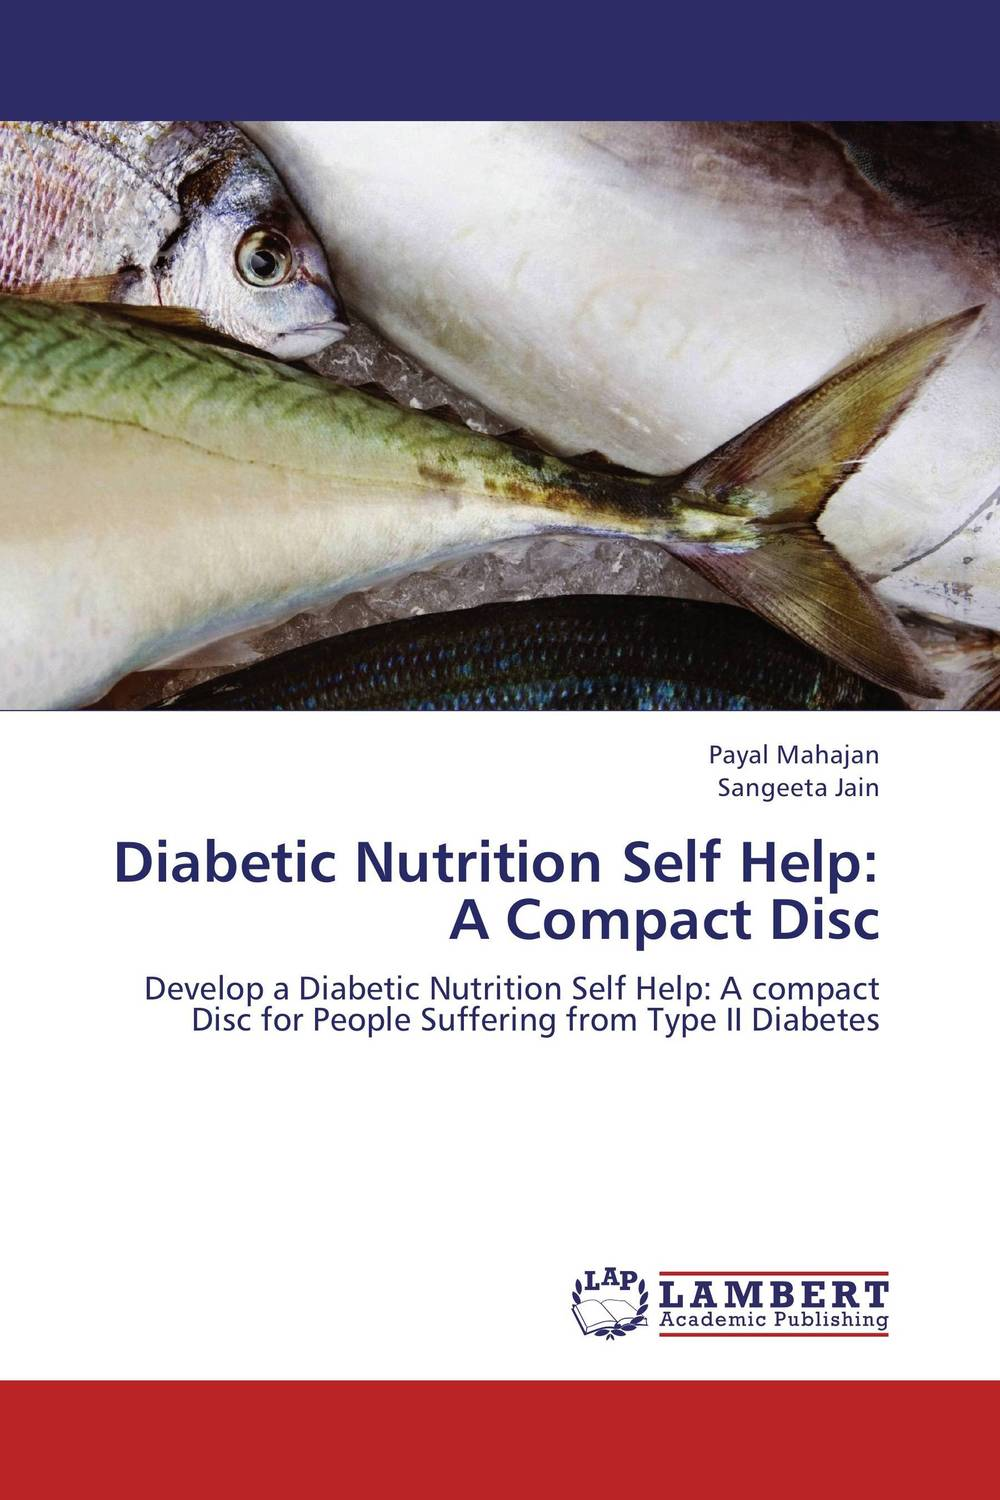 цена на Diabetic Nutrition Self Help: A Compact Disc